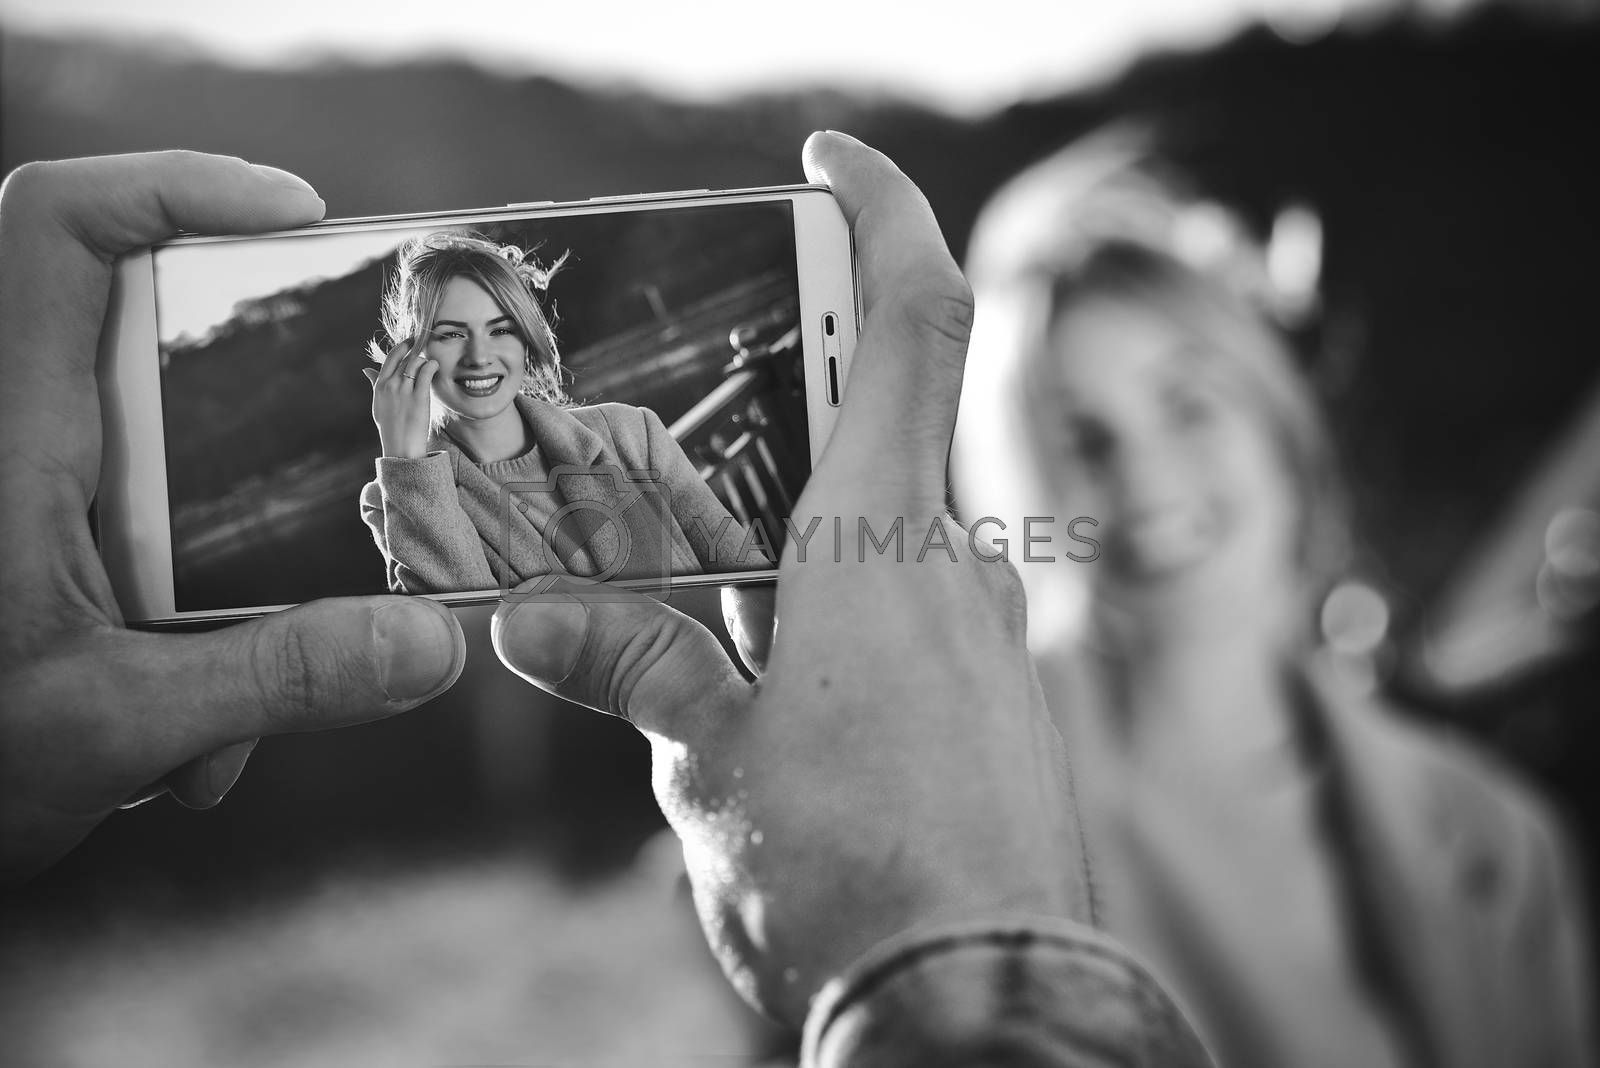 A man make a portrait on the phone of happy smiling woman standing on the bridge on sunny spring or autumn day outdoor